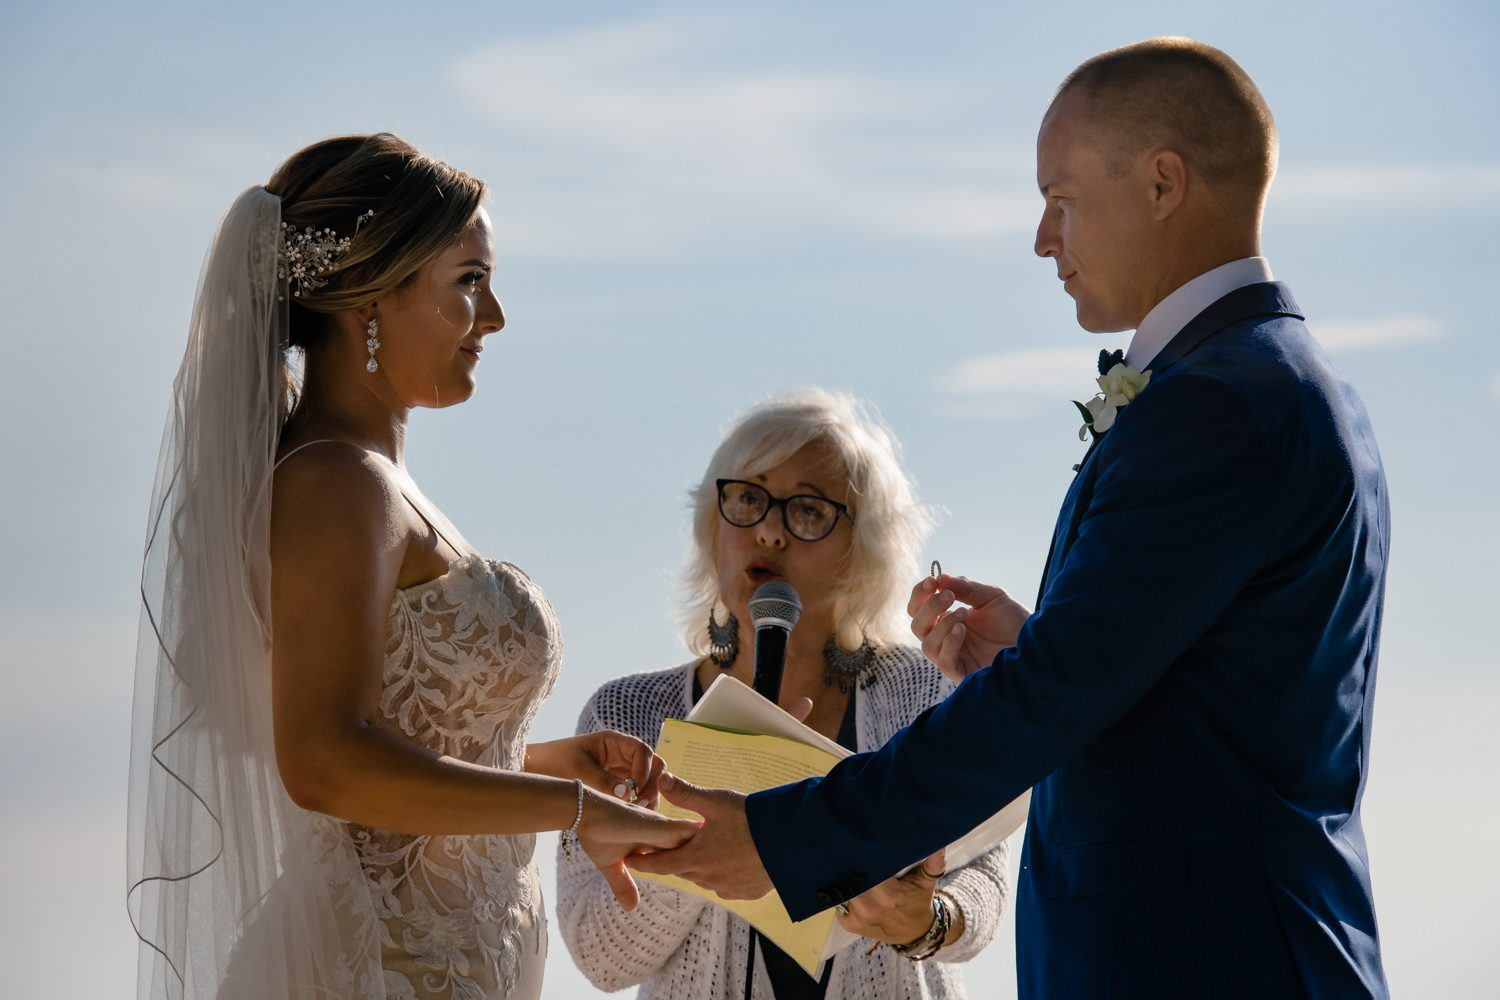 groom giving ring to bride during ceremony